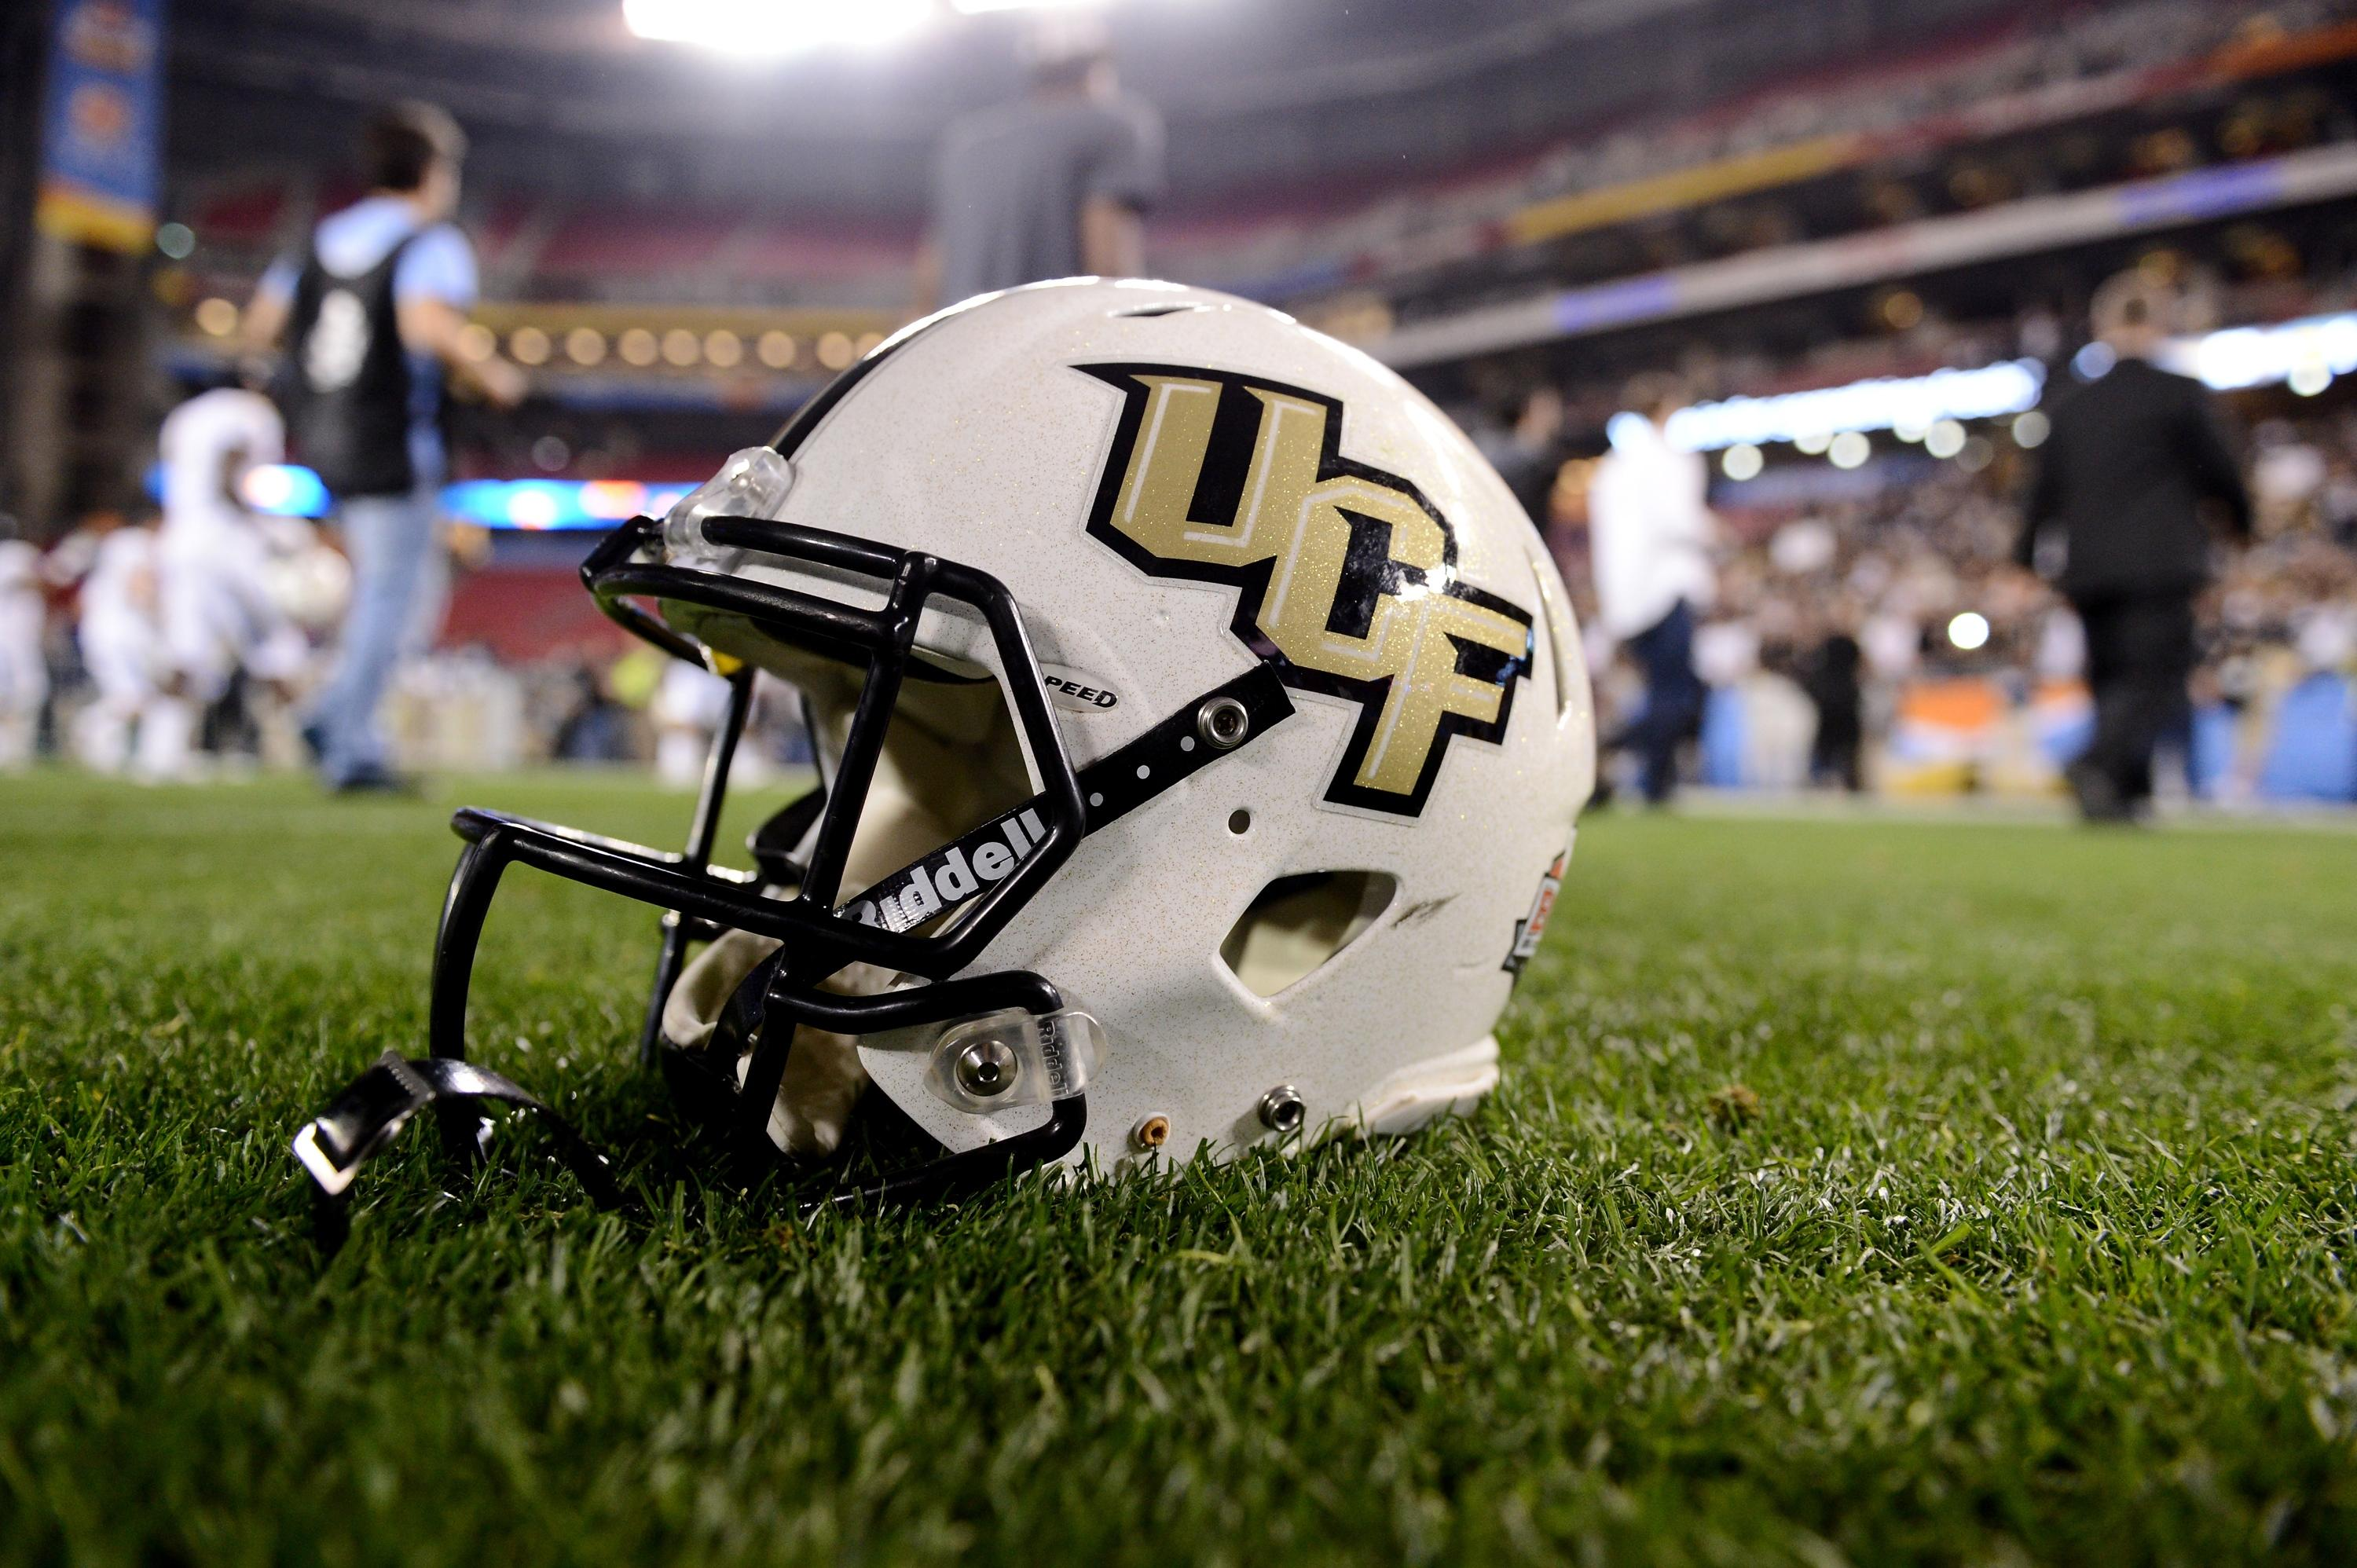 Family of UCF player to be awarded $200K, not $10 million